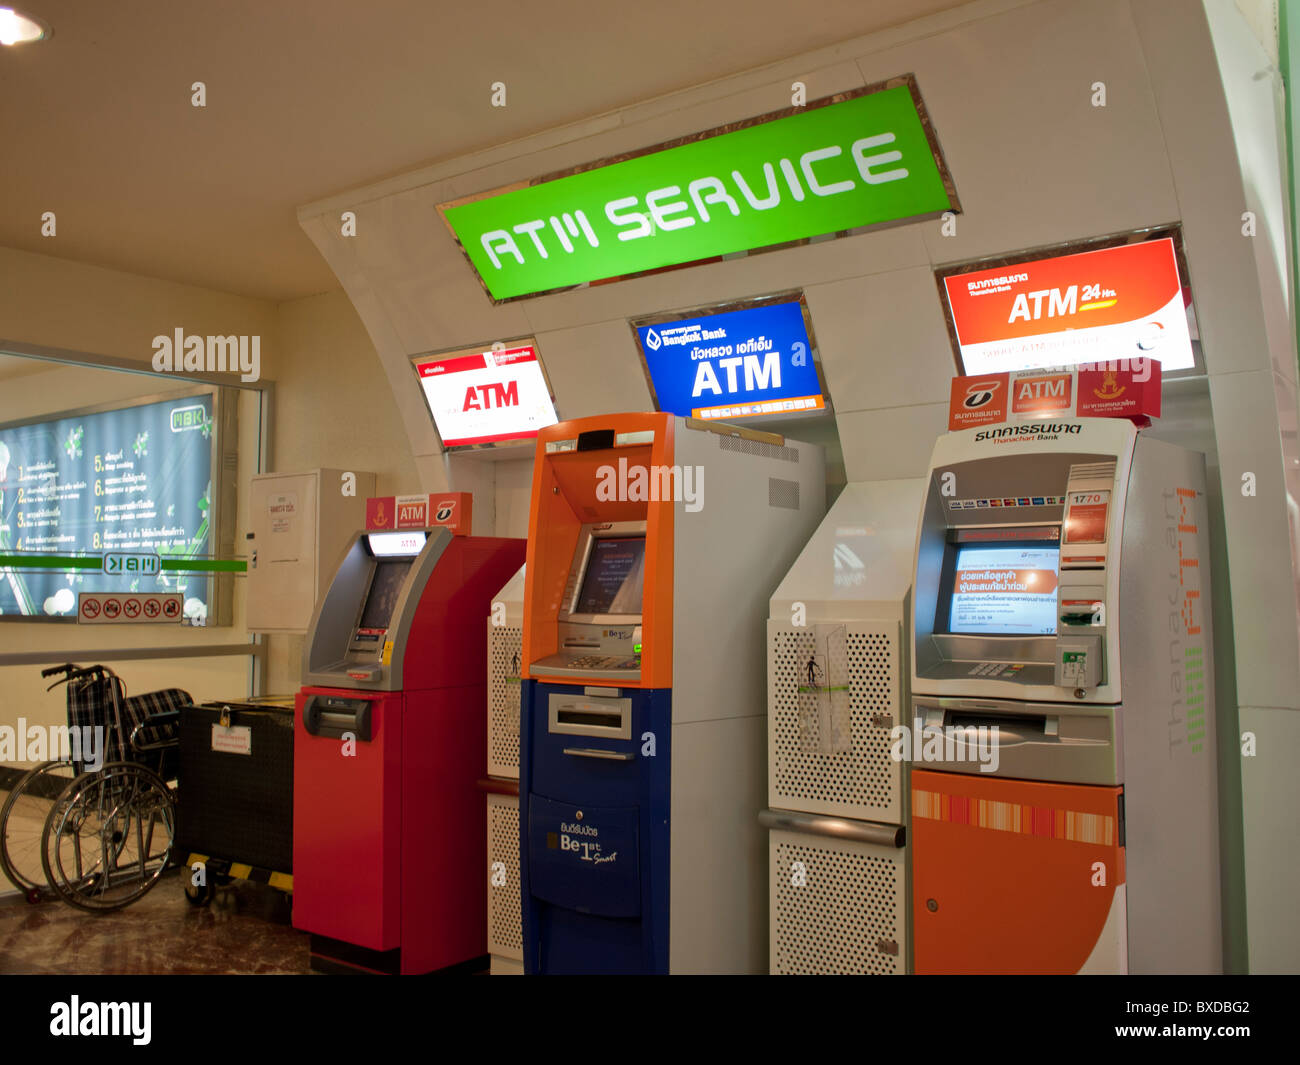 The ATM Service center area in MBK Shopping mall. - Stock Image